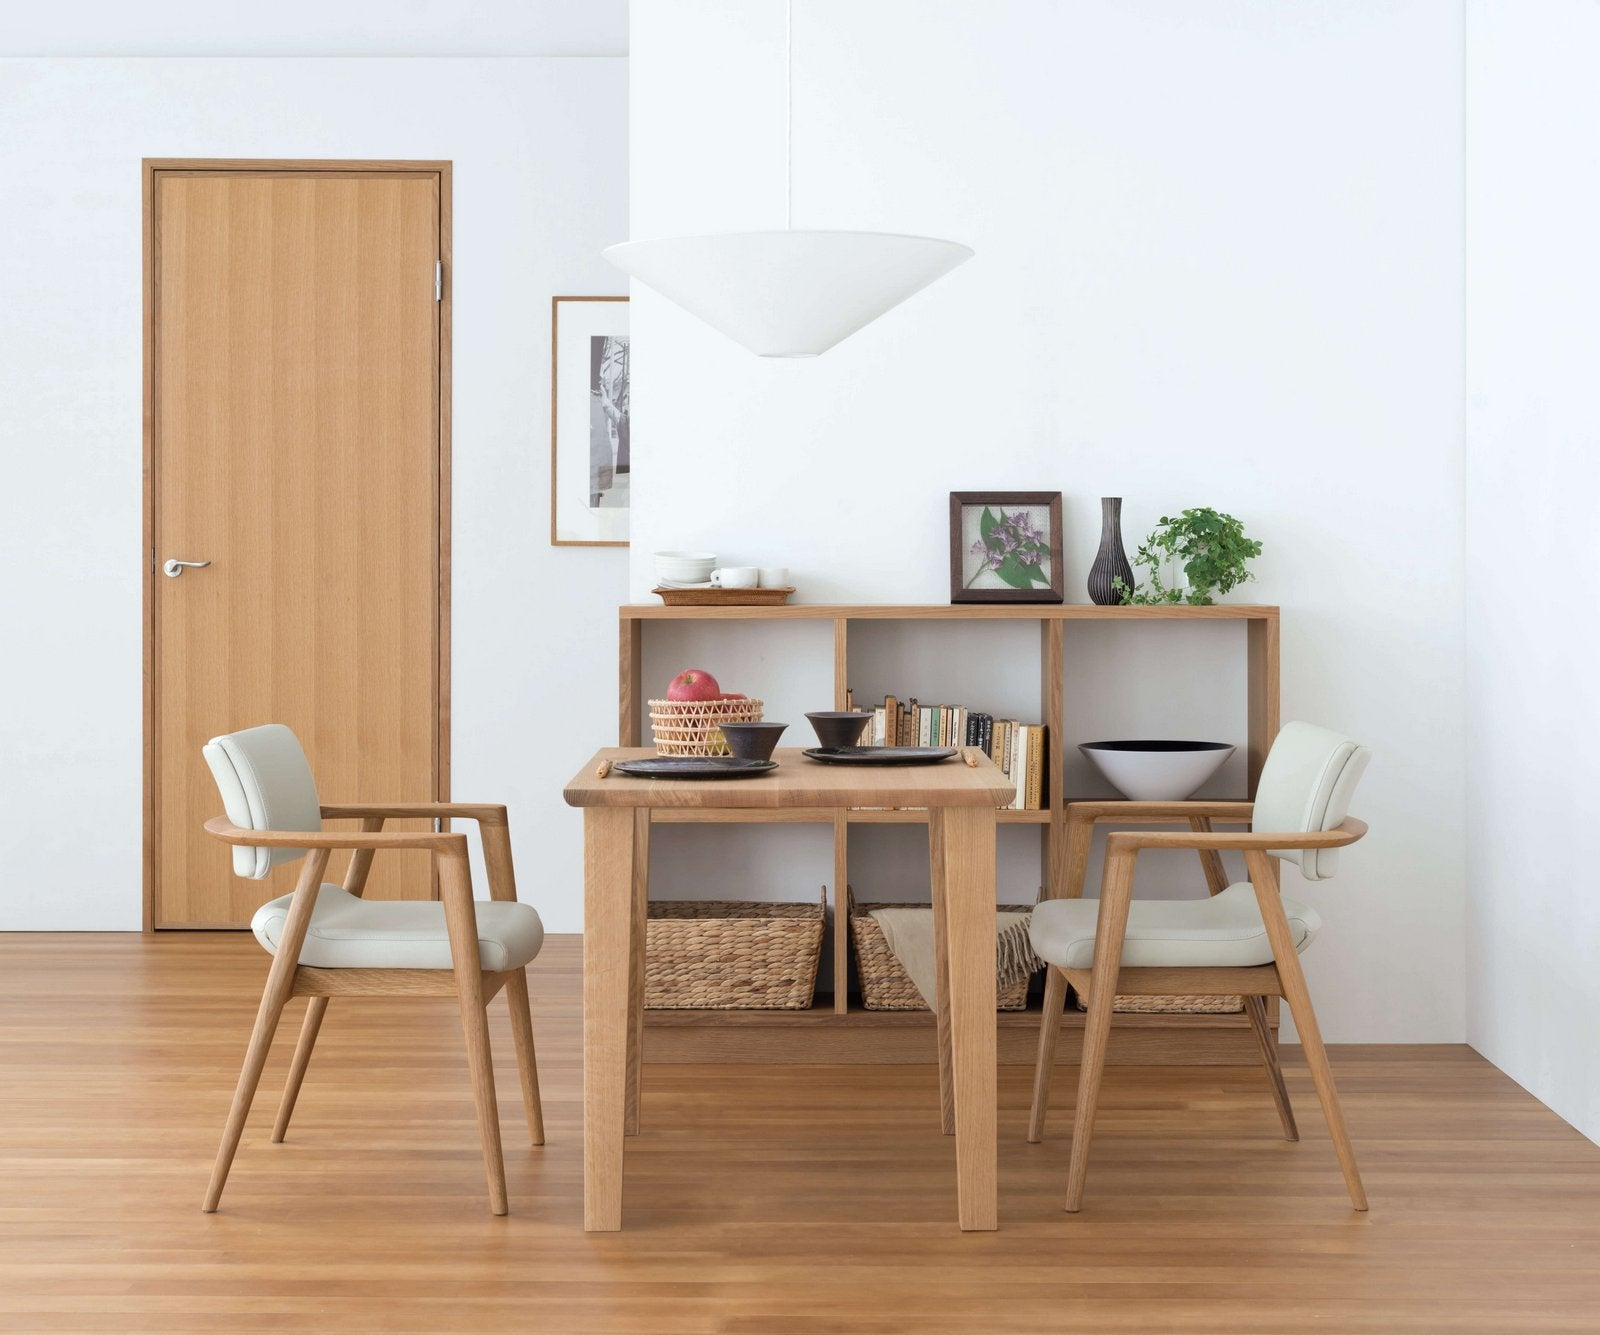 SEOTO-EX Chair - Dining Chair - HIDA